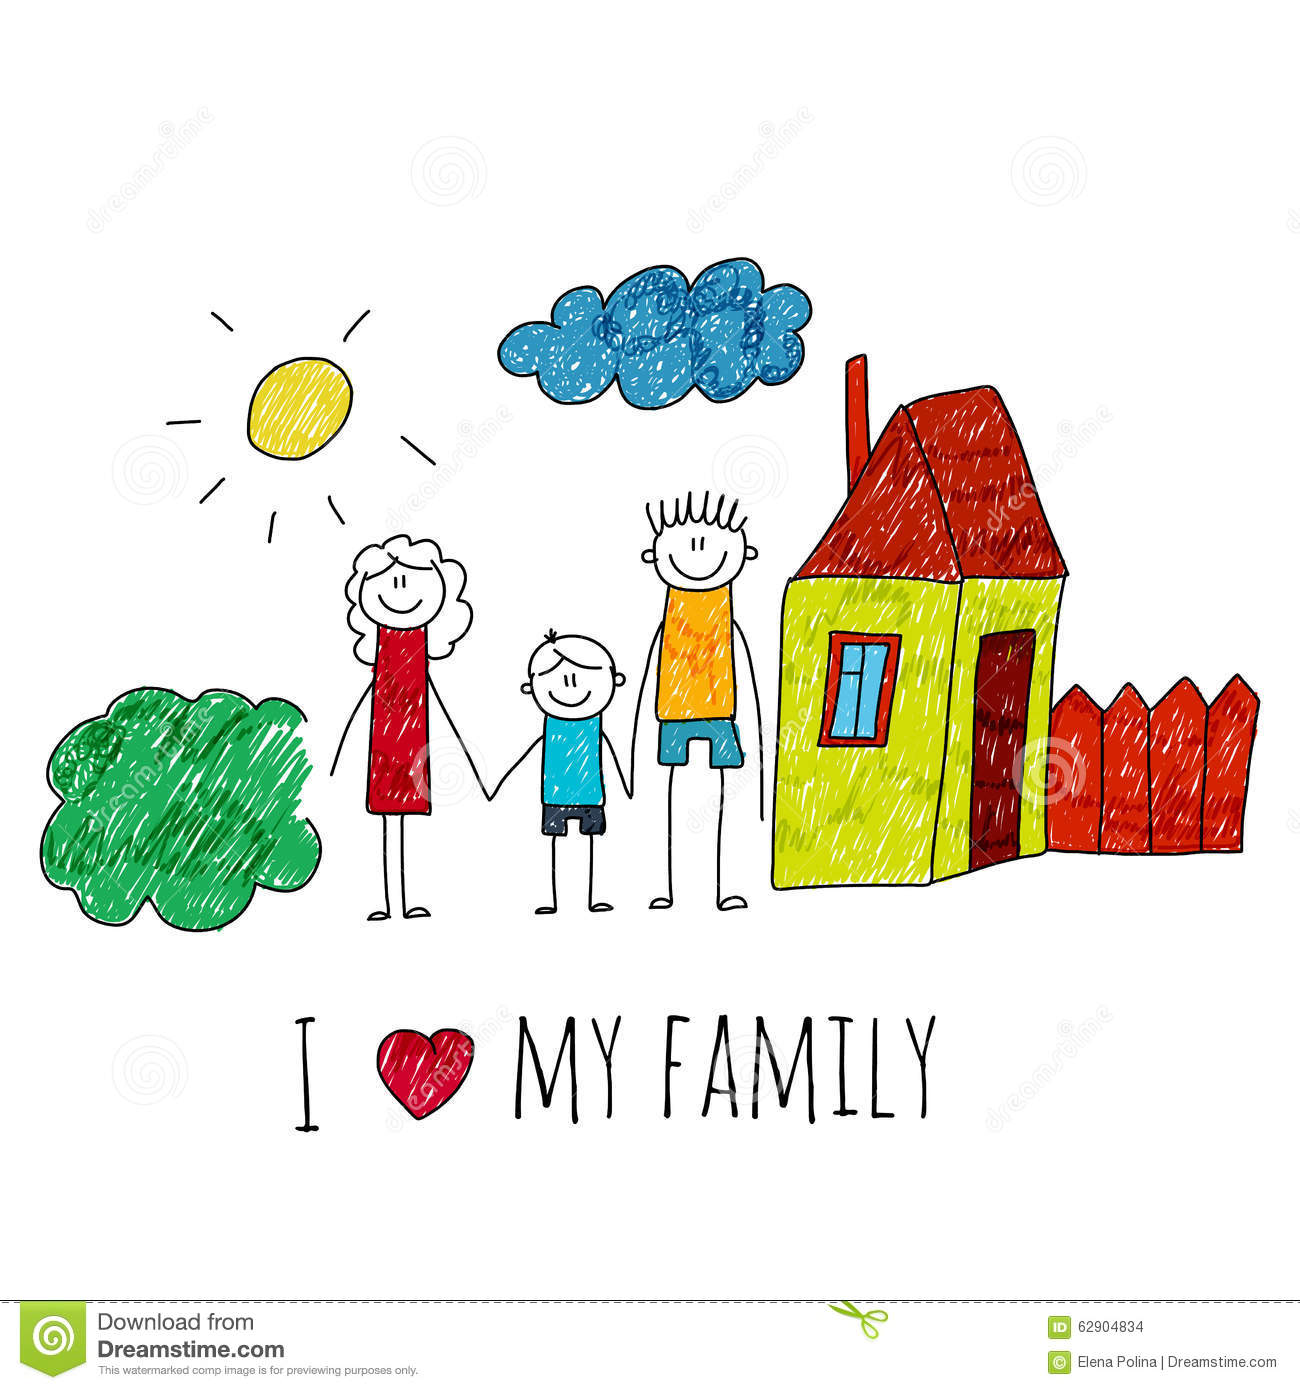 Stock Illustration Vector Image I Love My Family Happy House Kids Drawing Image62904834 on mexican house drawing